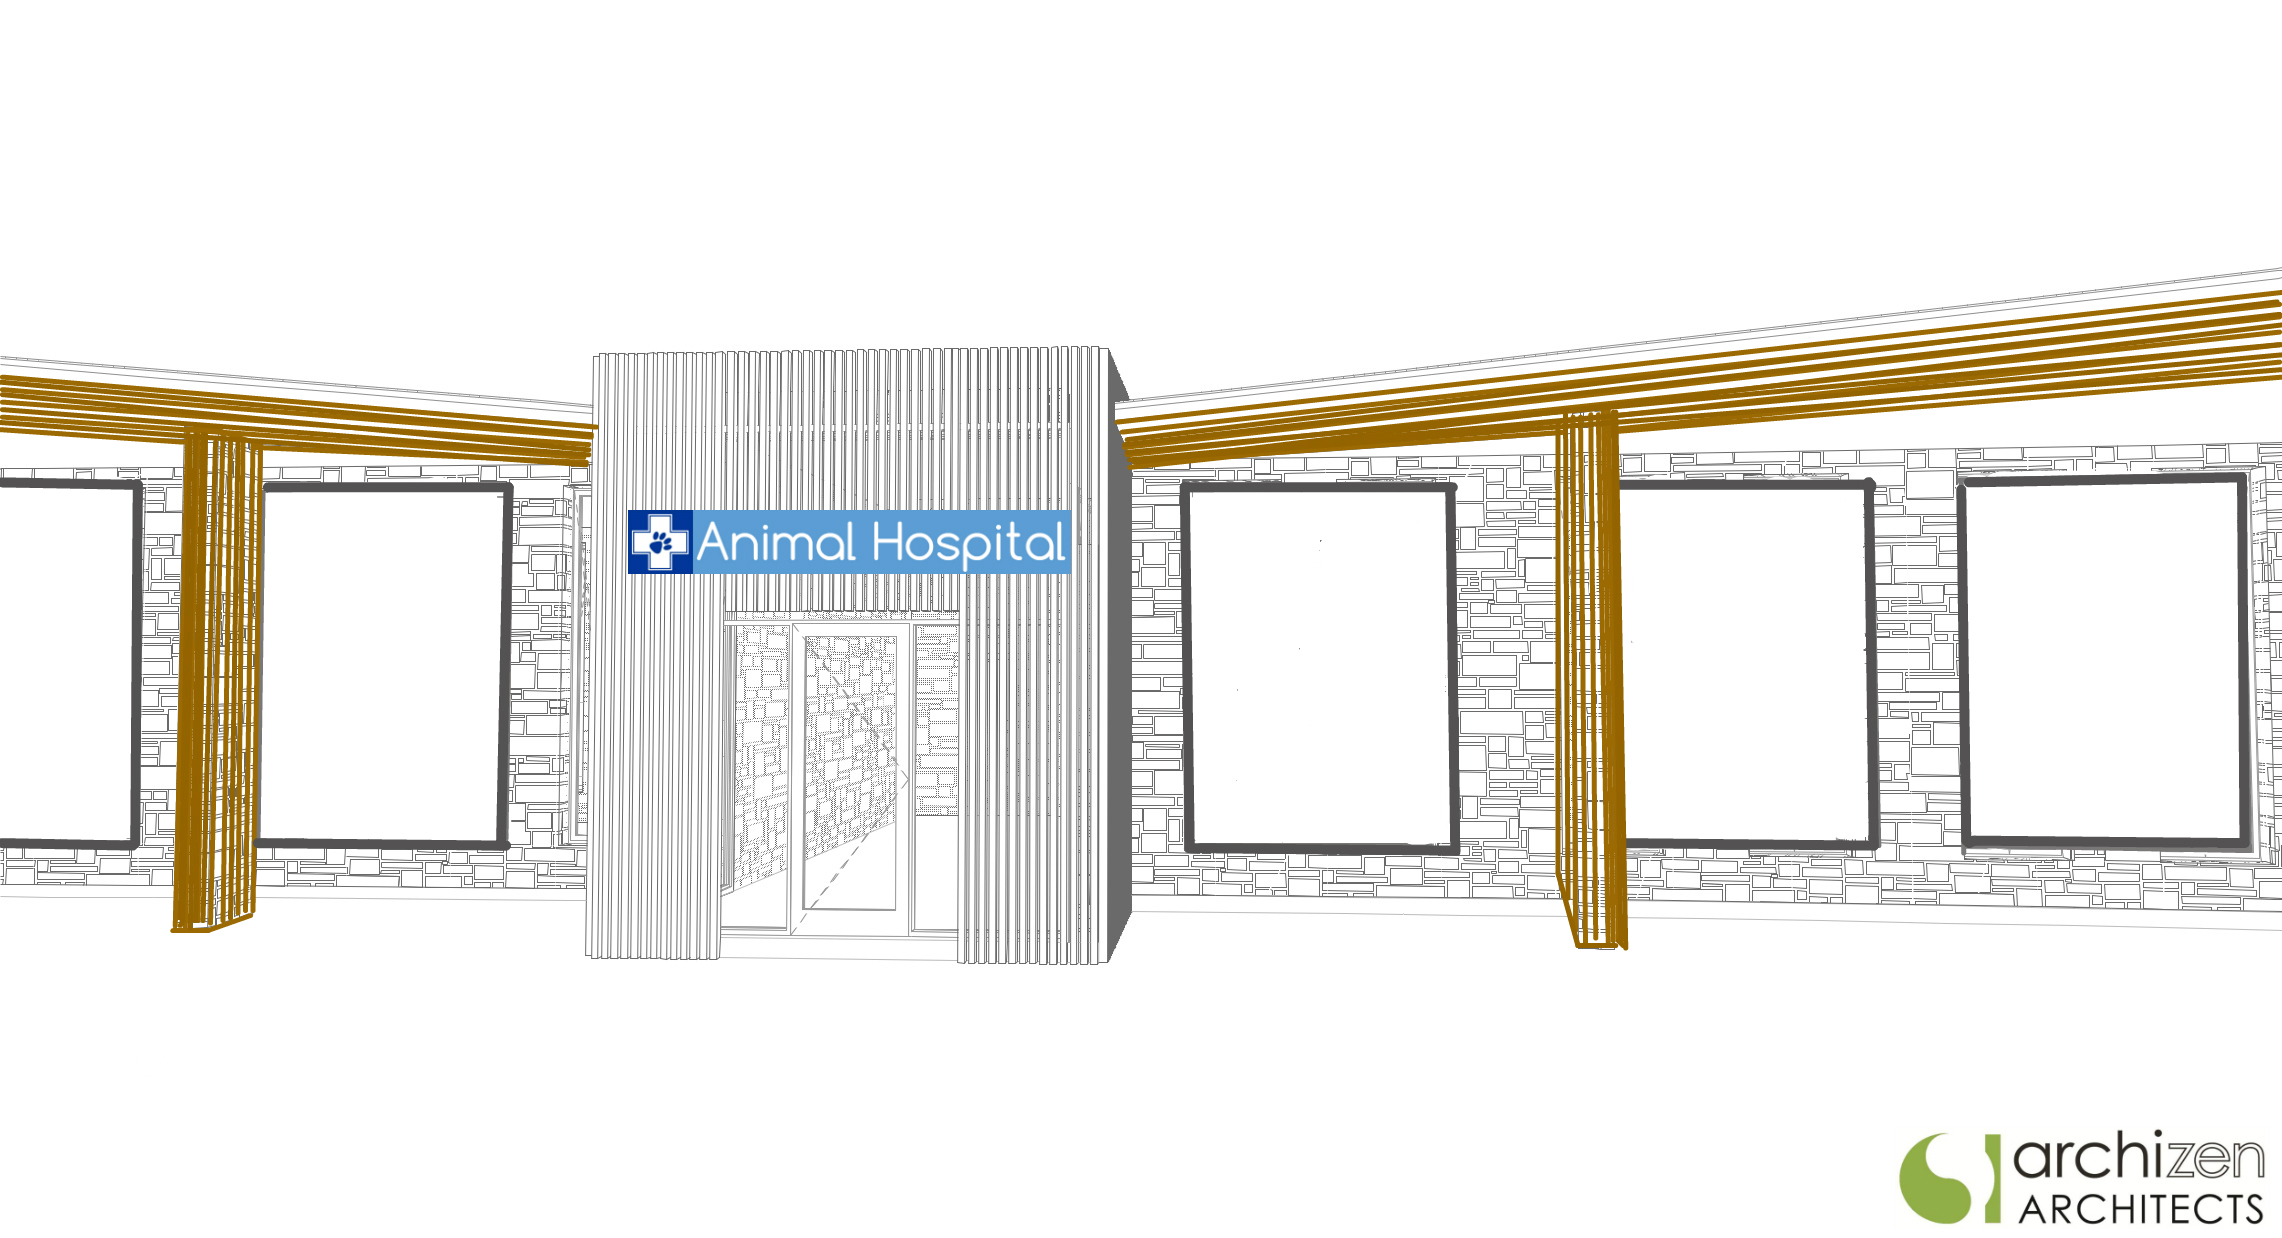 Veterinary Clinic Animal Hospital Architectural Design by Archizen Architects Boarding Kennels Pet Hotels